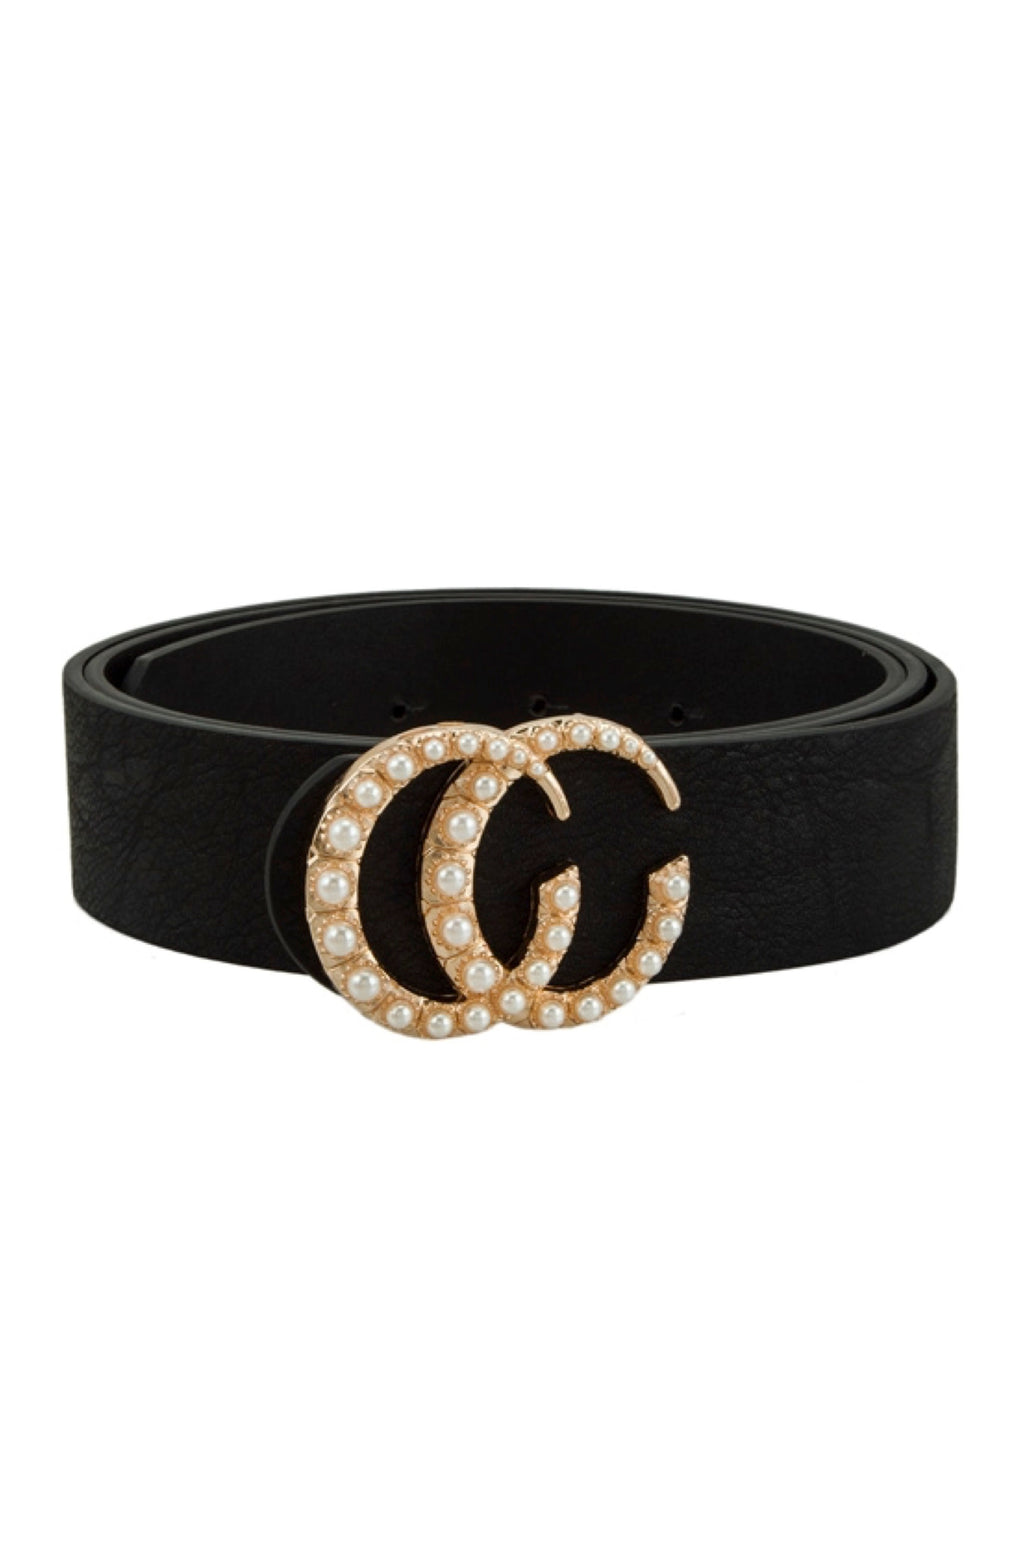 Pearl Encrusted CC Belt Black